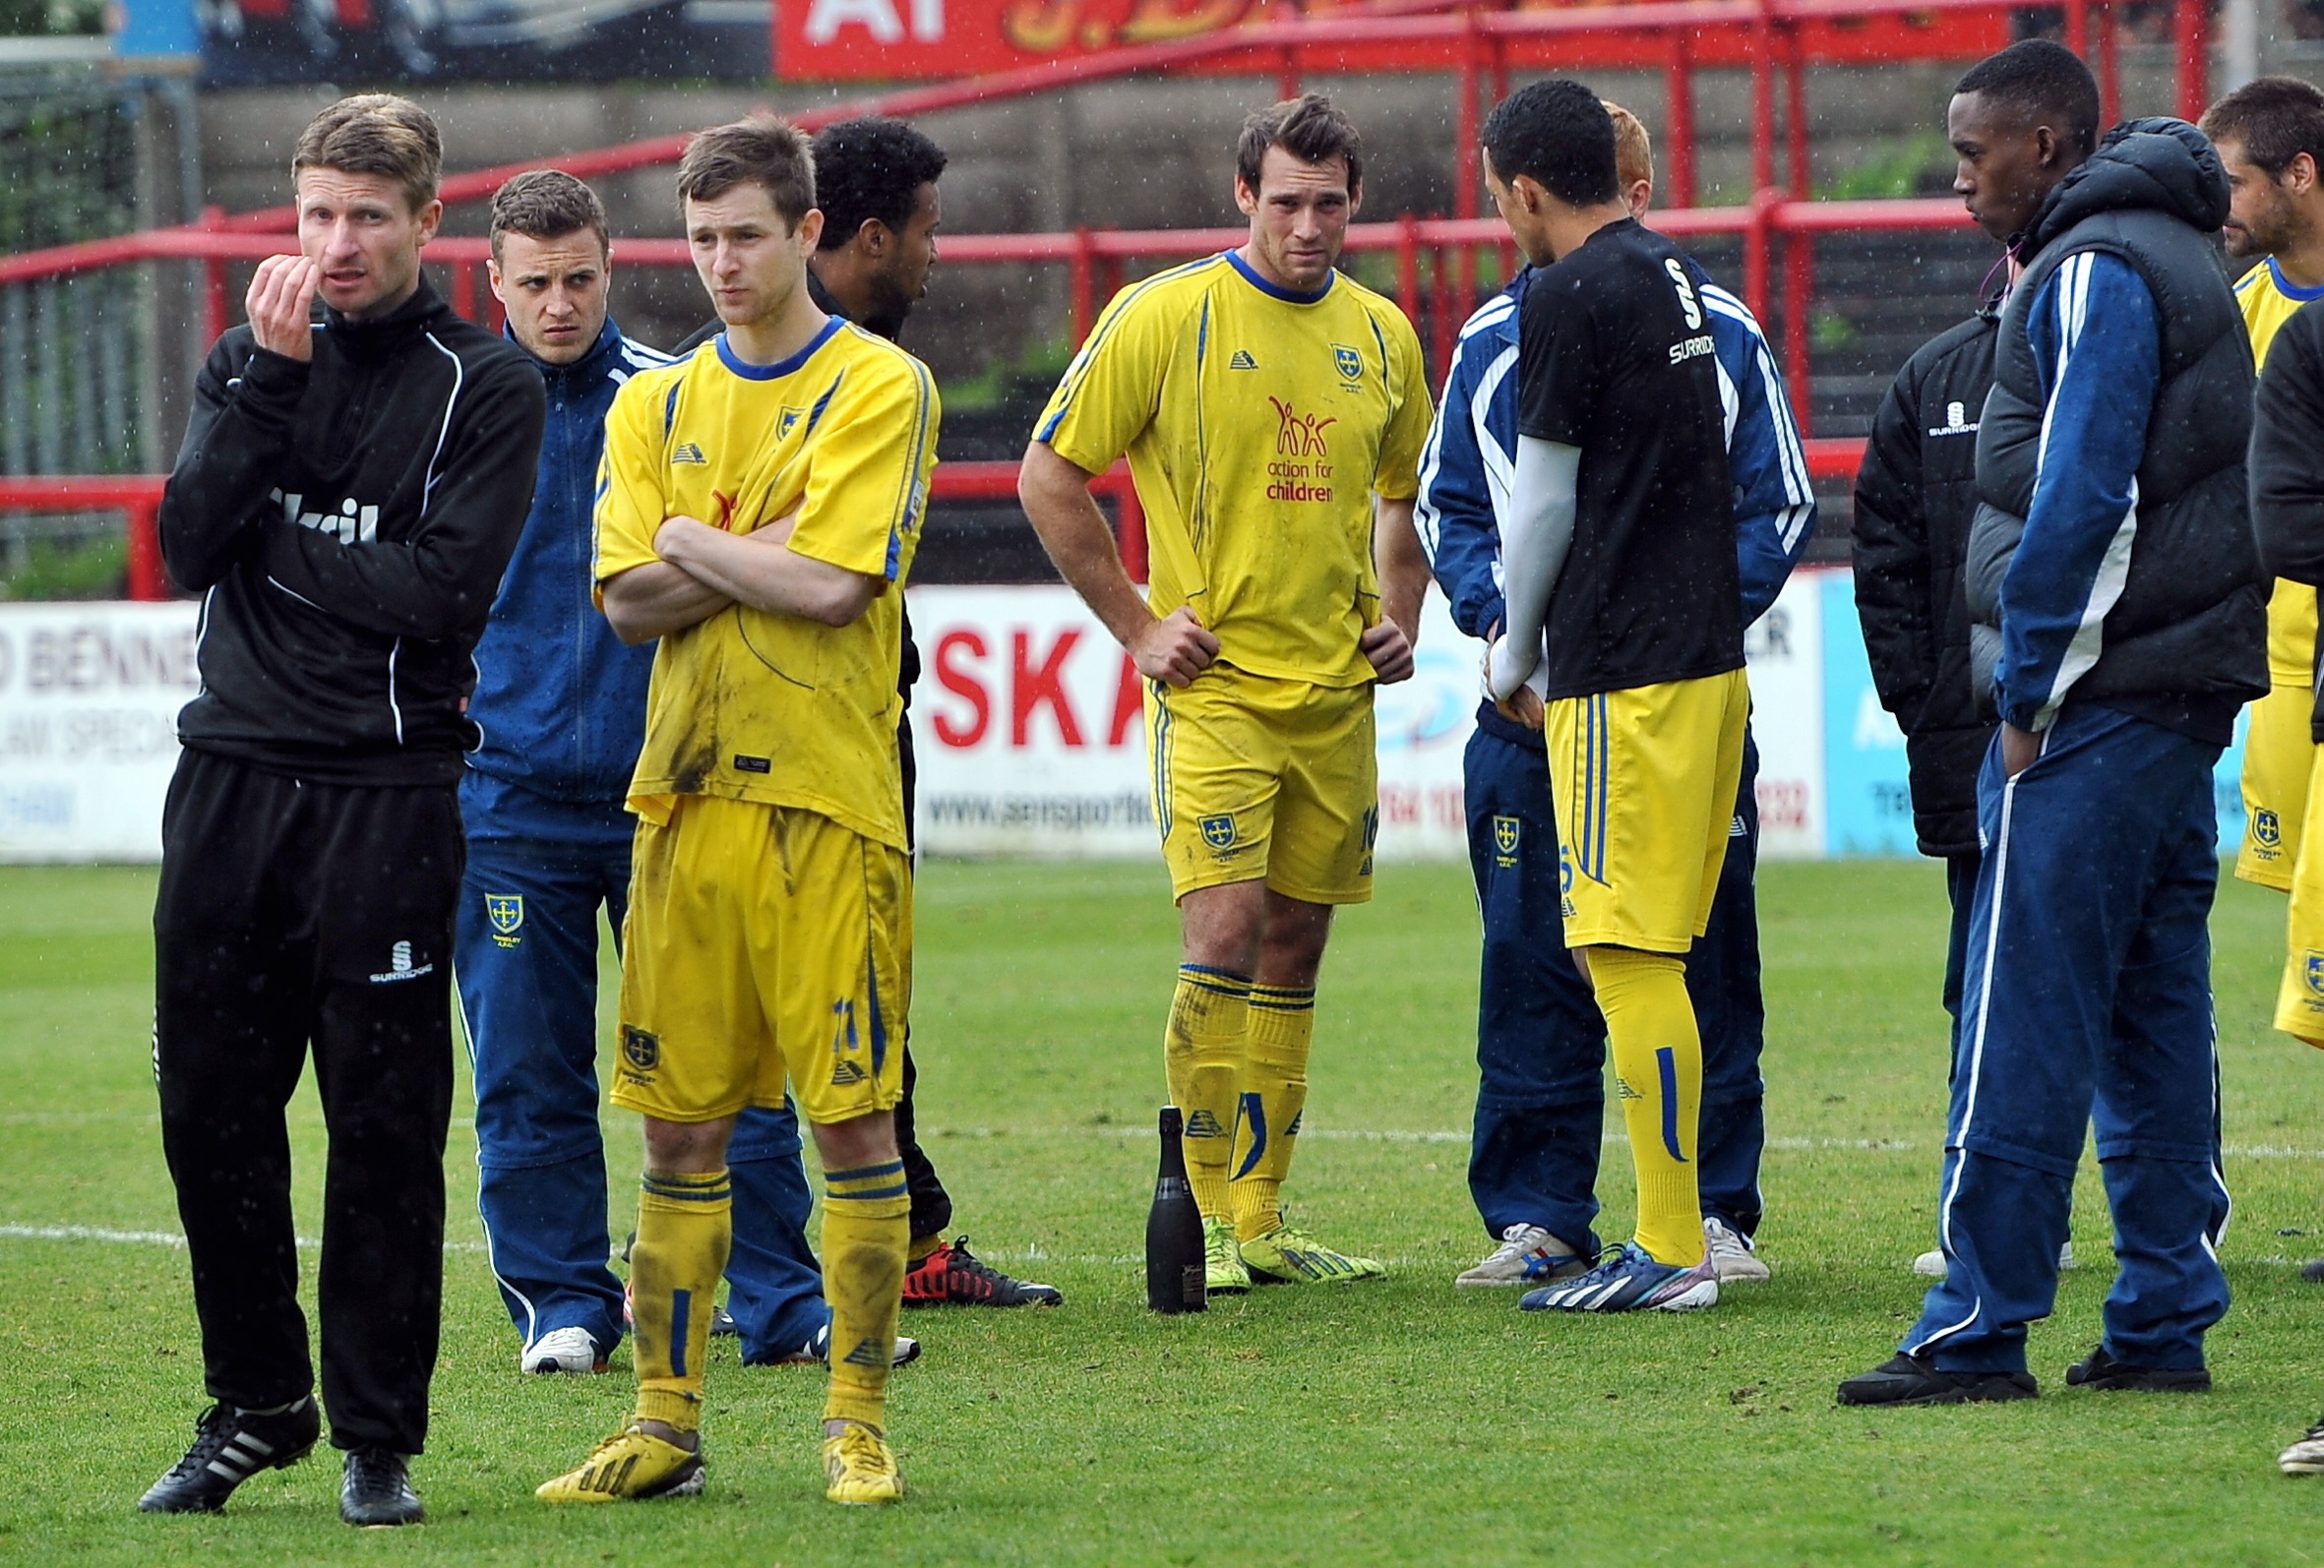 Guiseley aim to gain from the pain